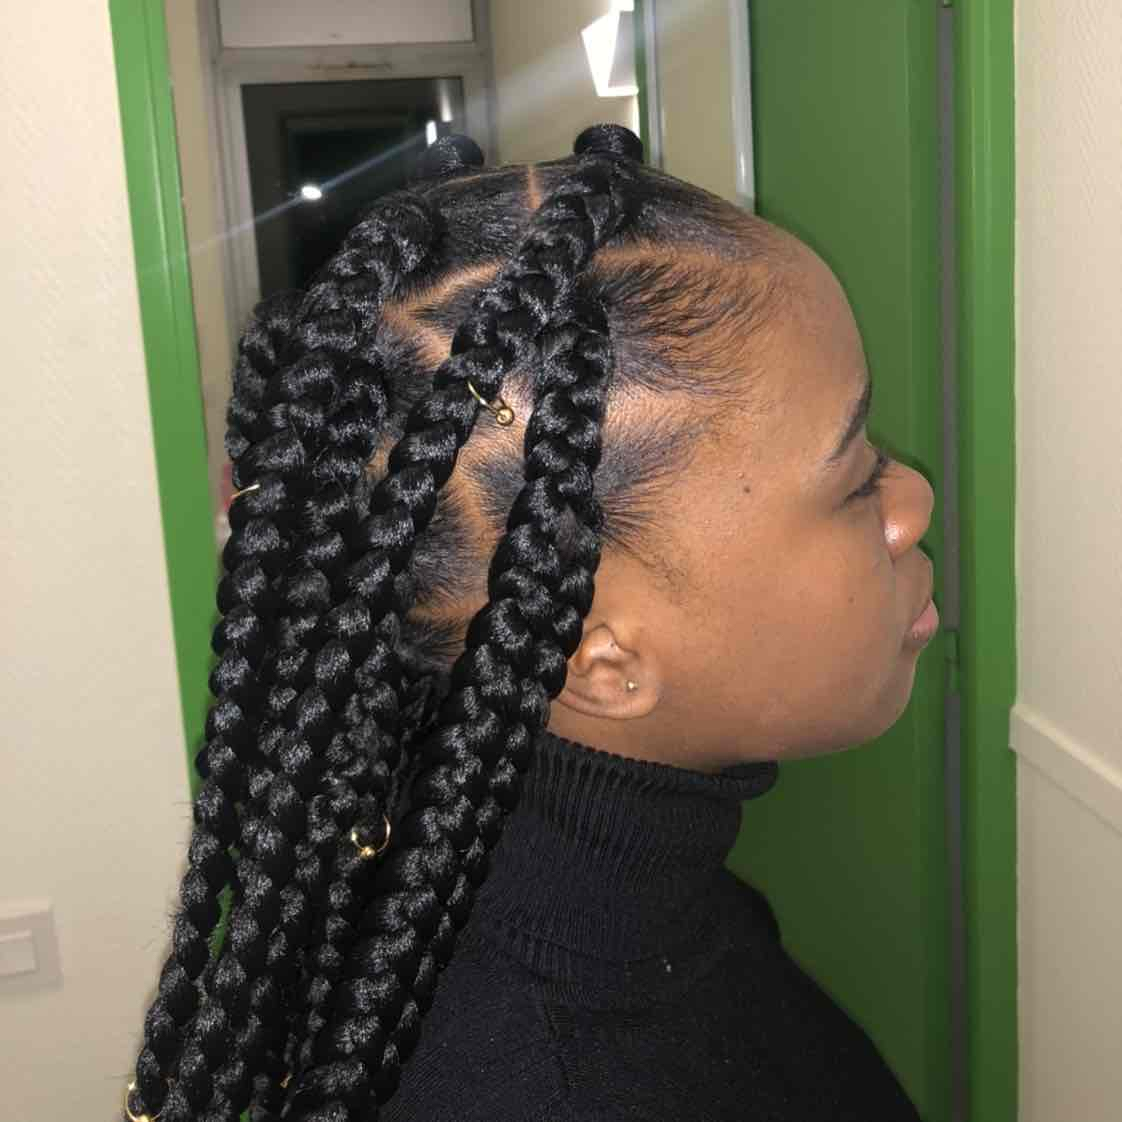 salon de coiffure afro tresse tresses box braids crochet braids vanilles tissages paris 75 77 78 91 92 93 94 95 BHHHBDFO